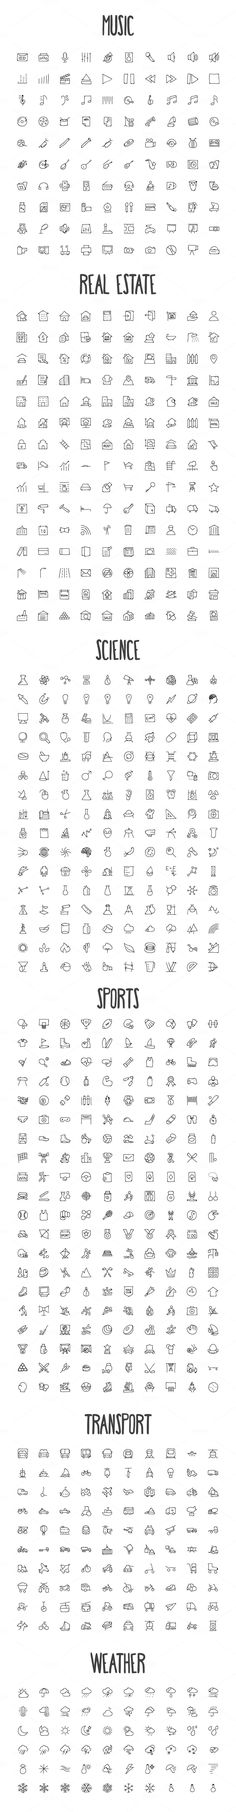 2440 Hand Drawn Doodle Icons Bundle by creativestall on Crea.- 2440 Hand Drawn Doodle Icons Bundle by creativestall on Creative Market - Doodle Drawings, Doodle Art, Doodle Frames, Doodle Tattoo, Tattoo Drawings, Bullet Journal Inspiration, Drawing Tips, Drawing Reference, Zentangle